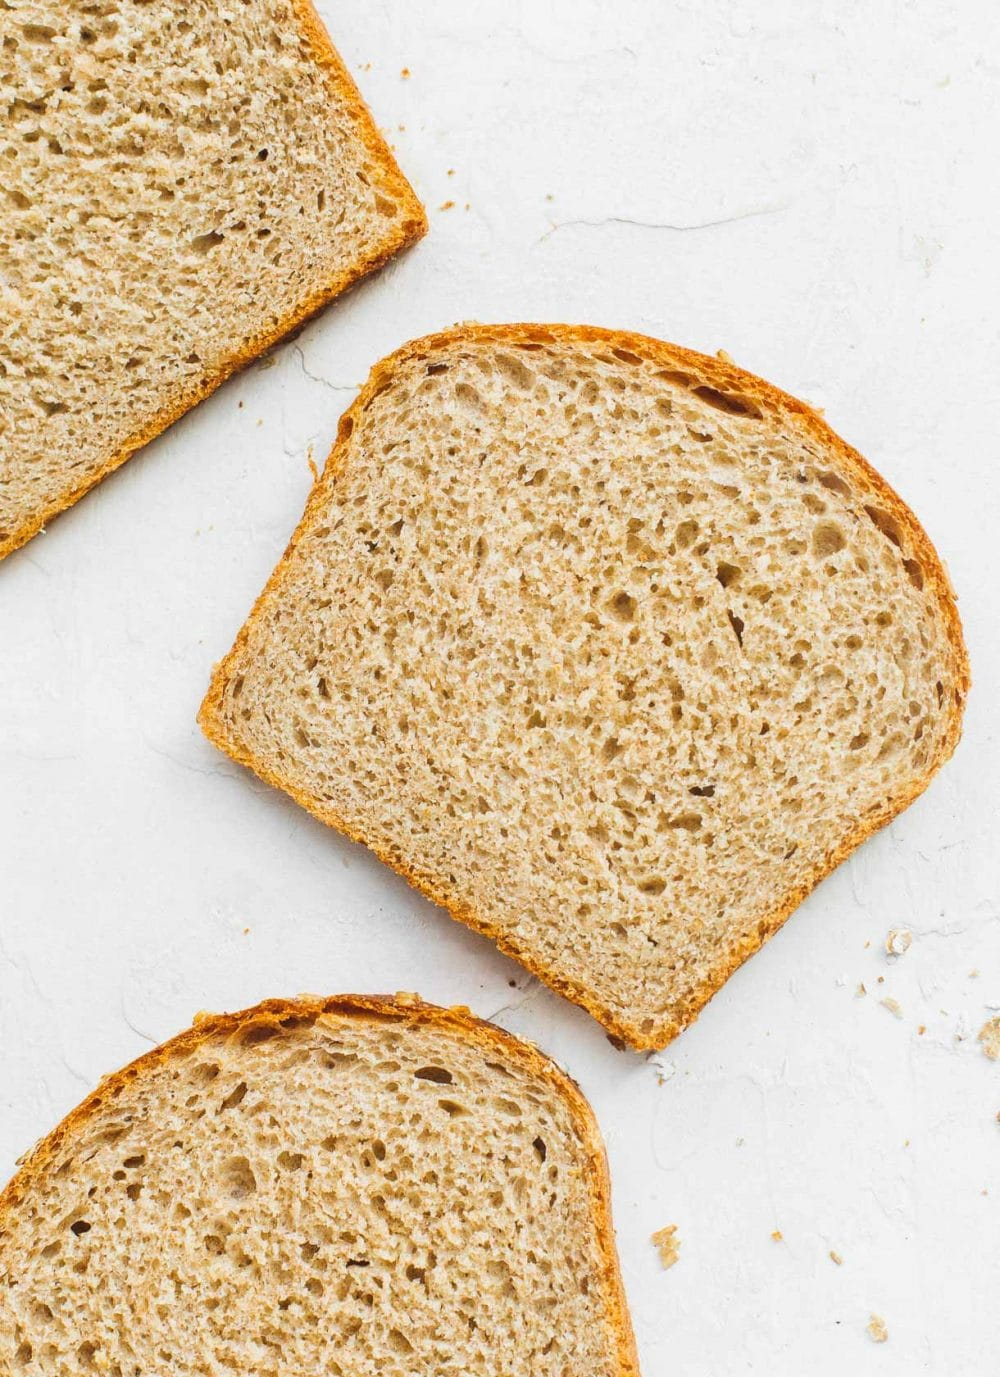 whole wheat sourdough sandwich bread slices laying on white backround